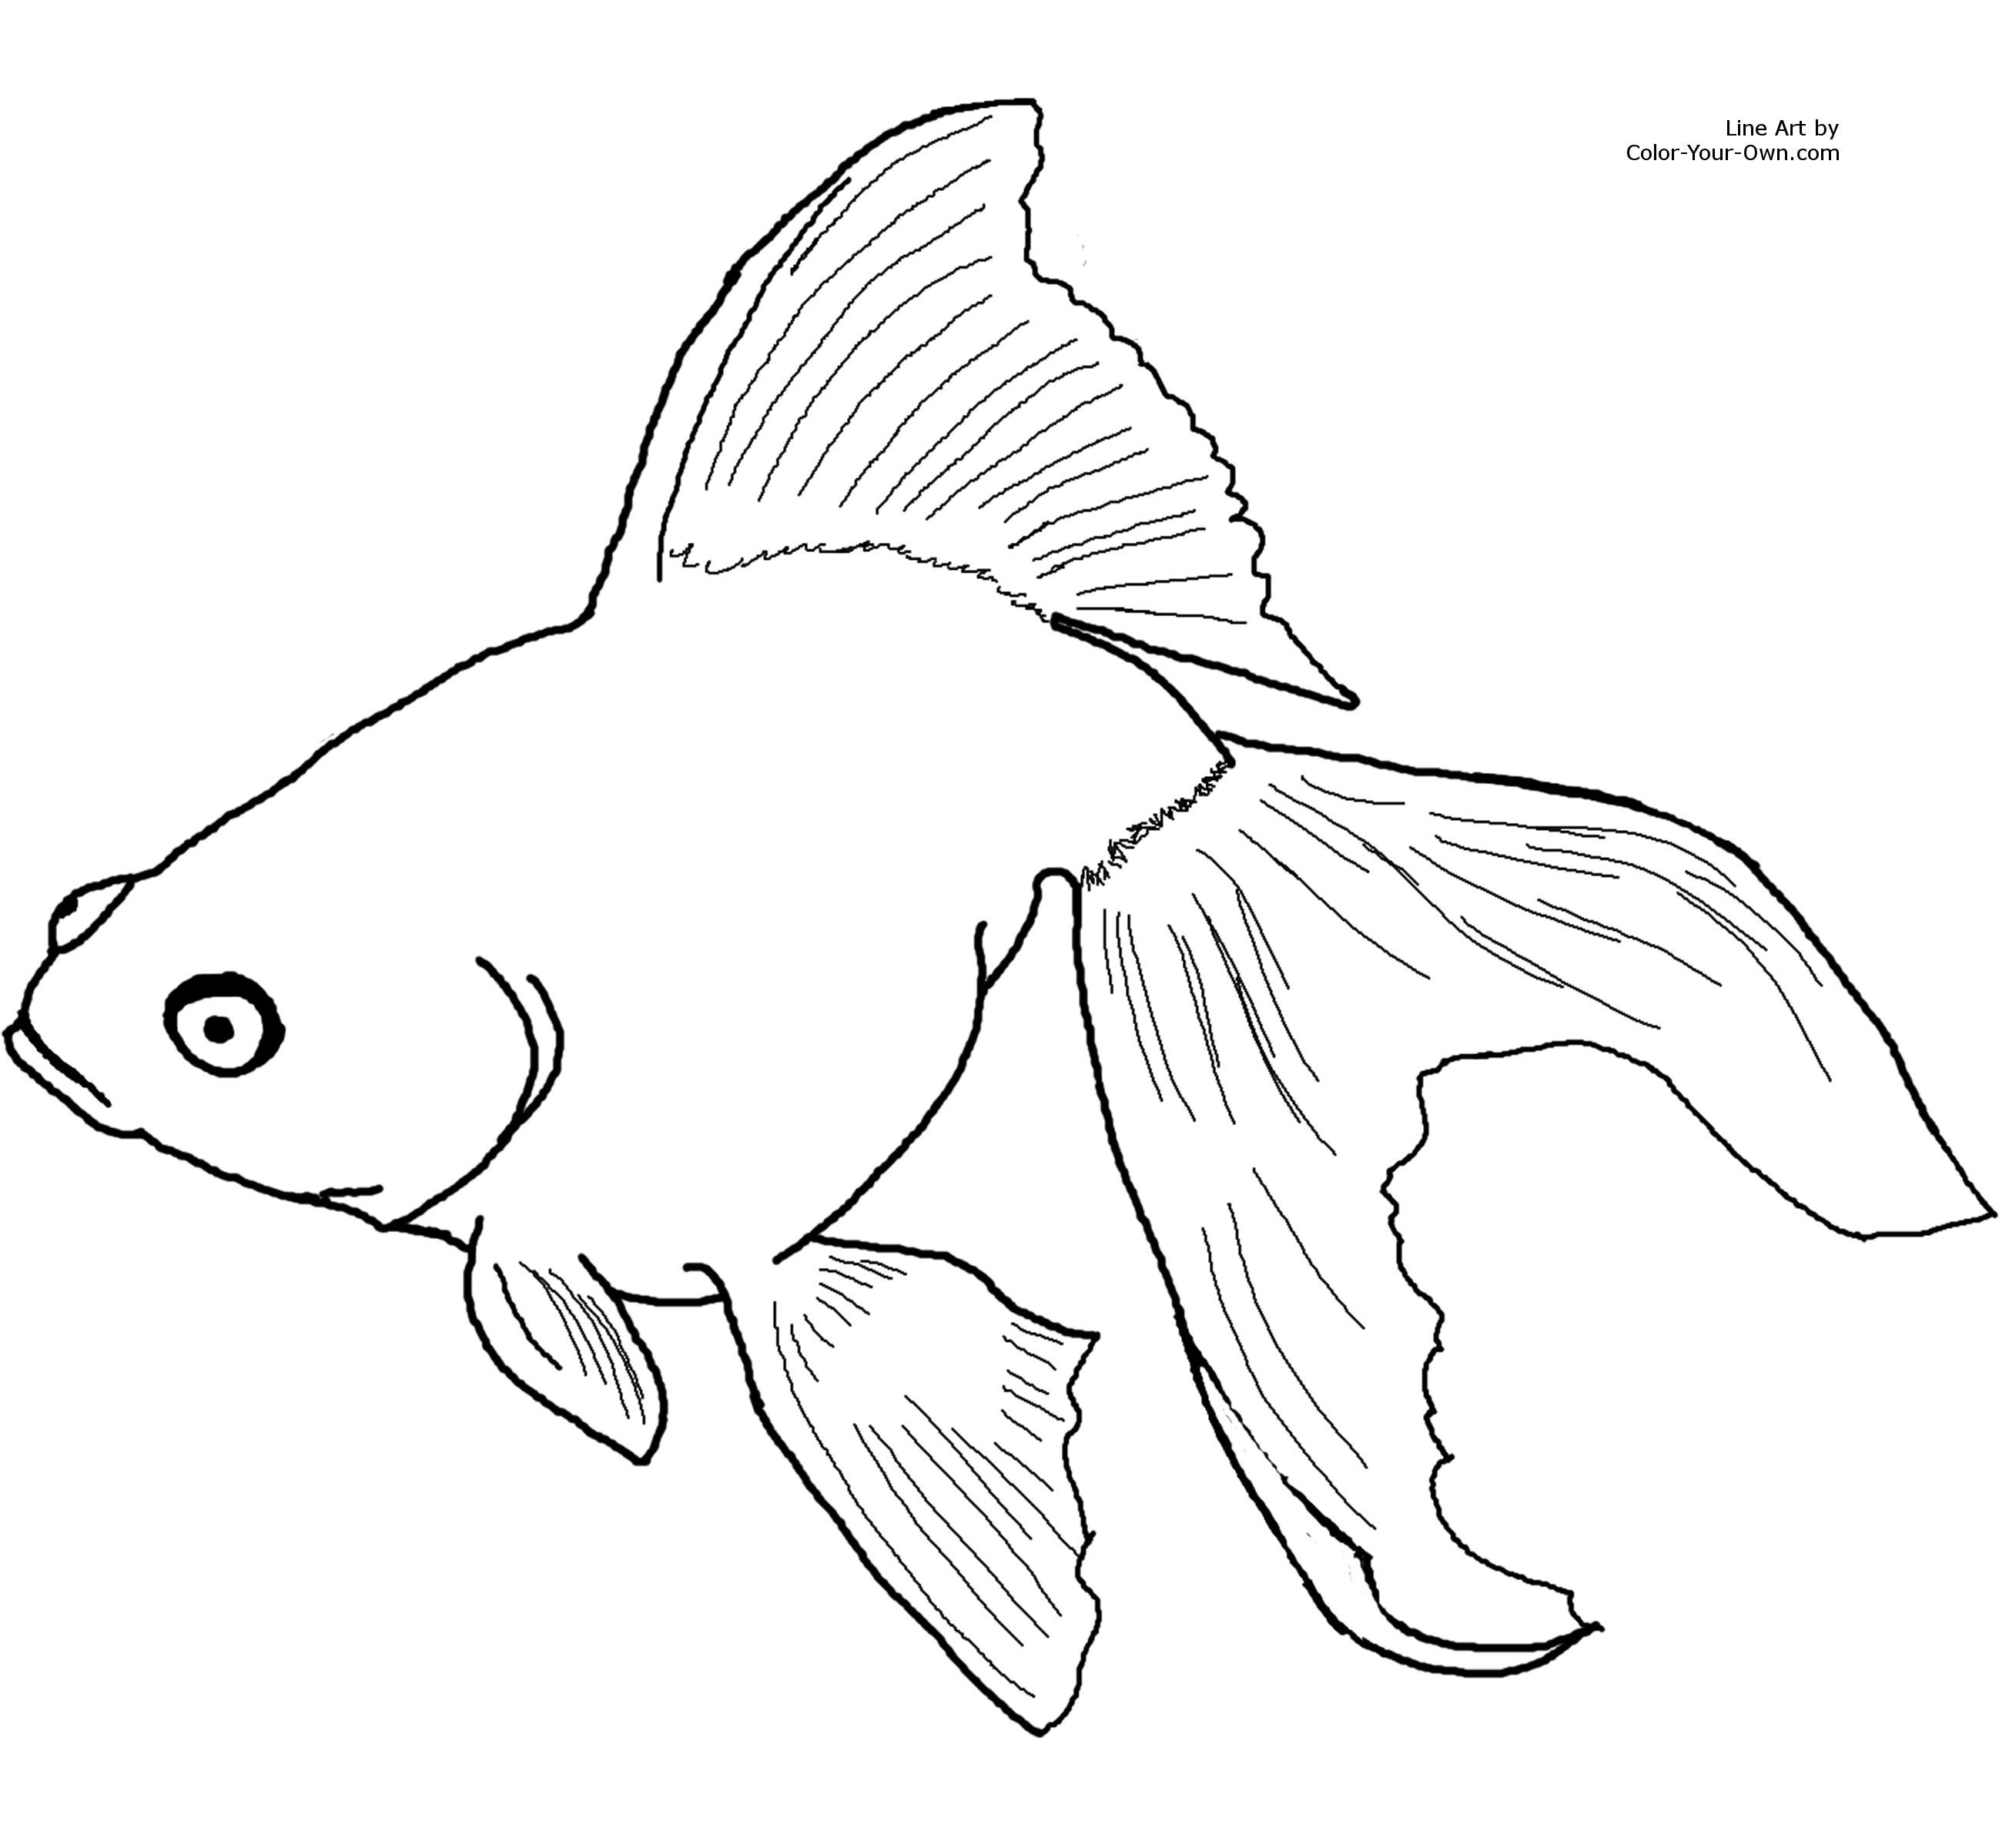 most kids adore coloring so this goldfish coloring activity of a